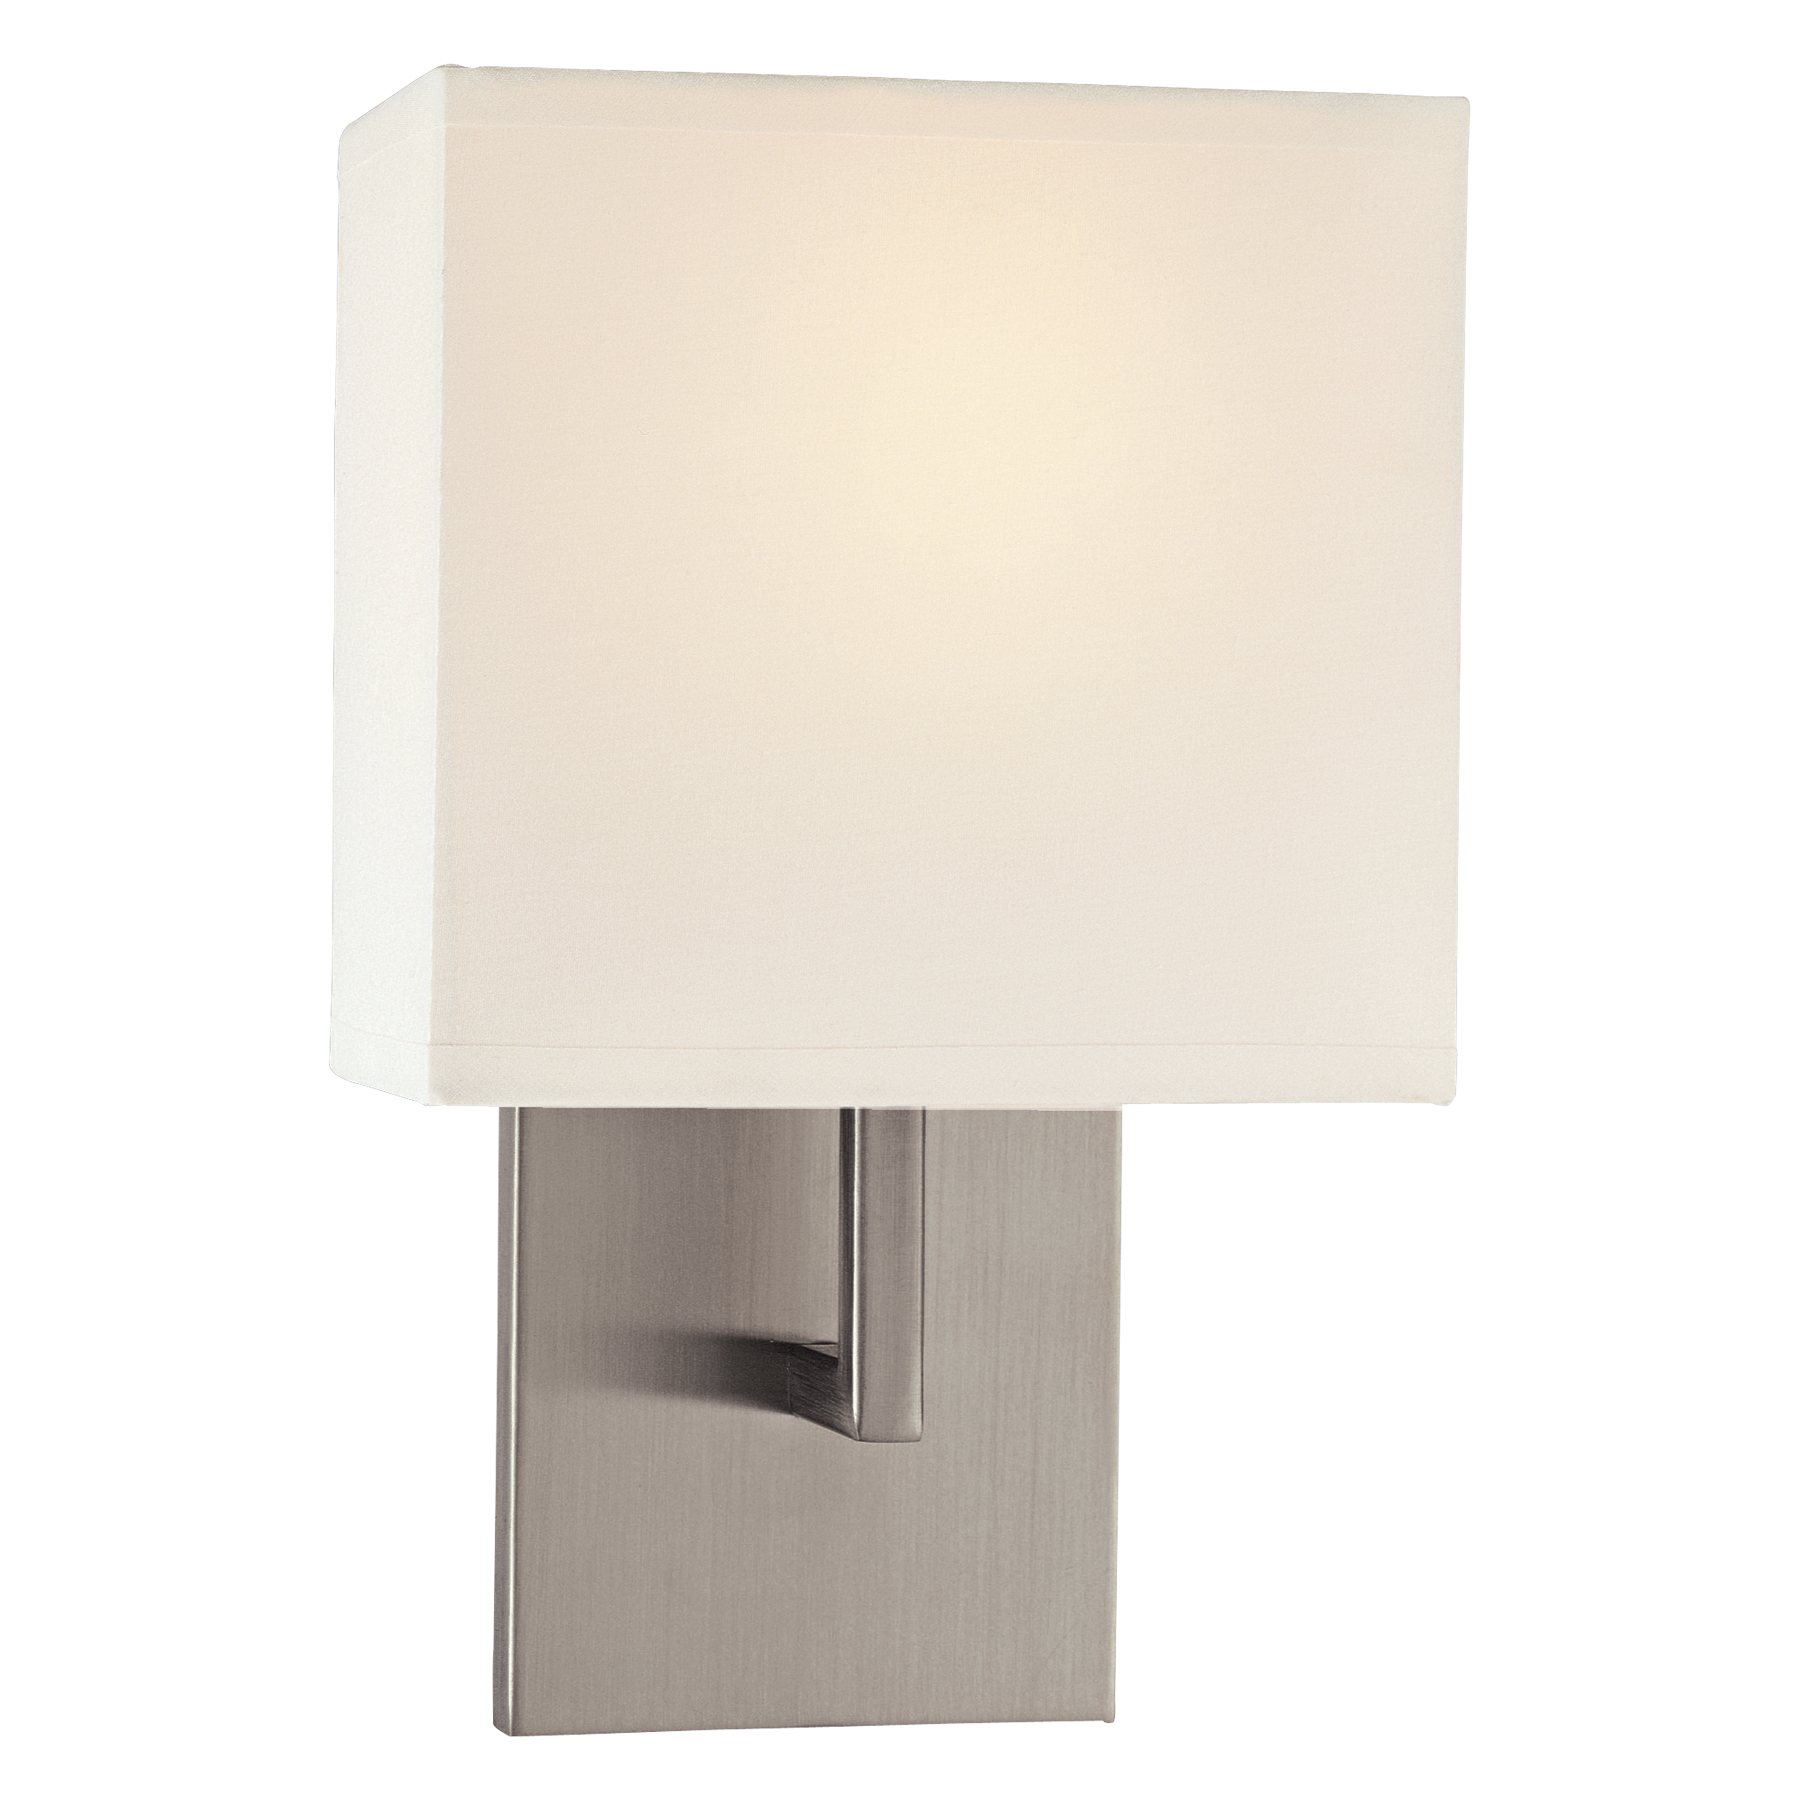 wall sconce by george kovacs  p - p wall sconce by george kovacs  p